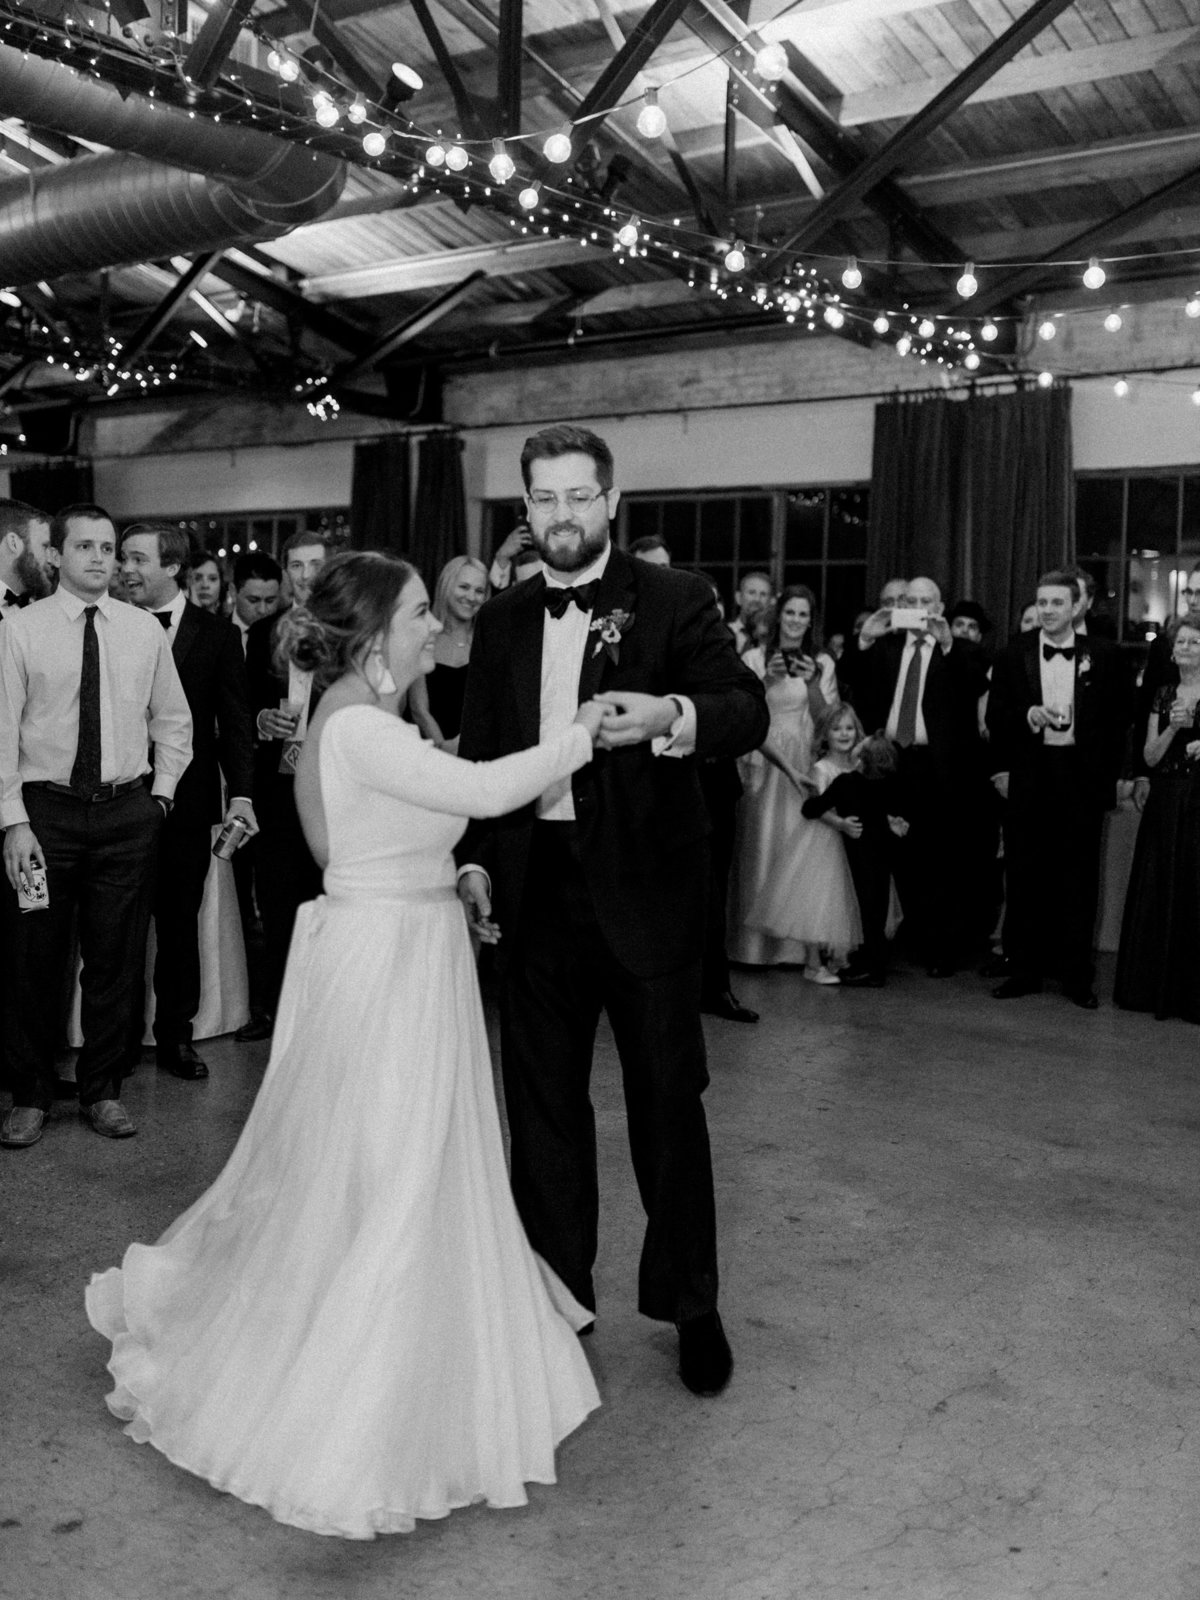 Courtney Hanson Photography - Festive Holiday Wedding in Dallas at Hickory Street Annex-1310